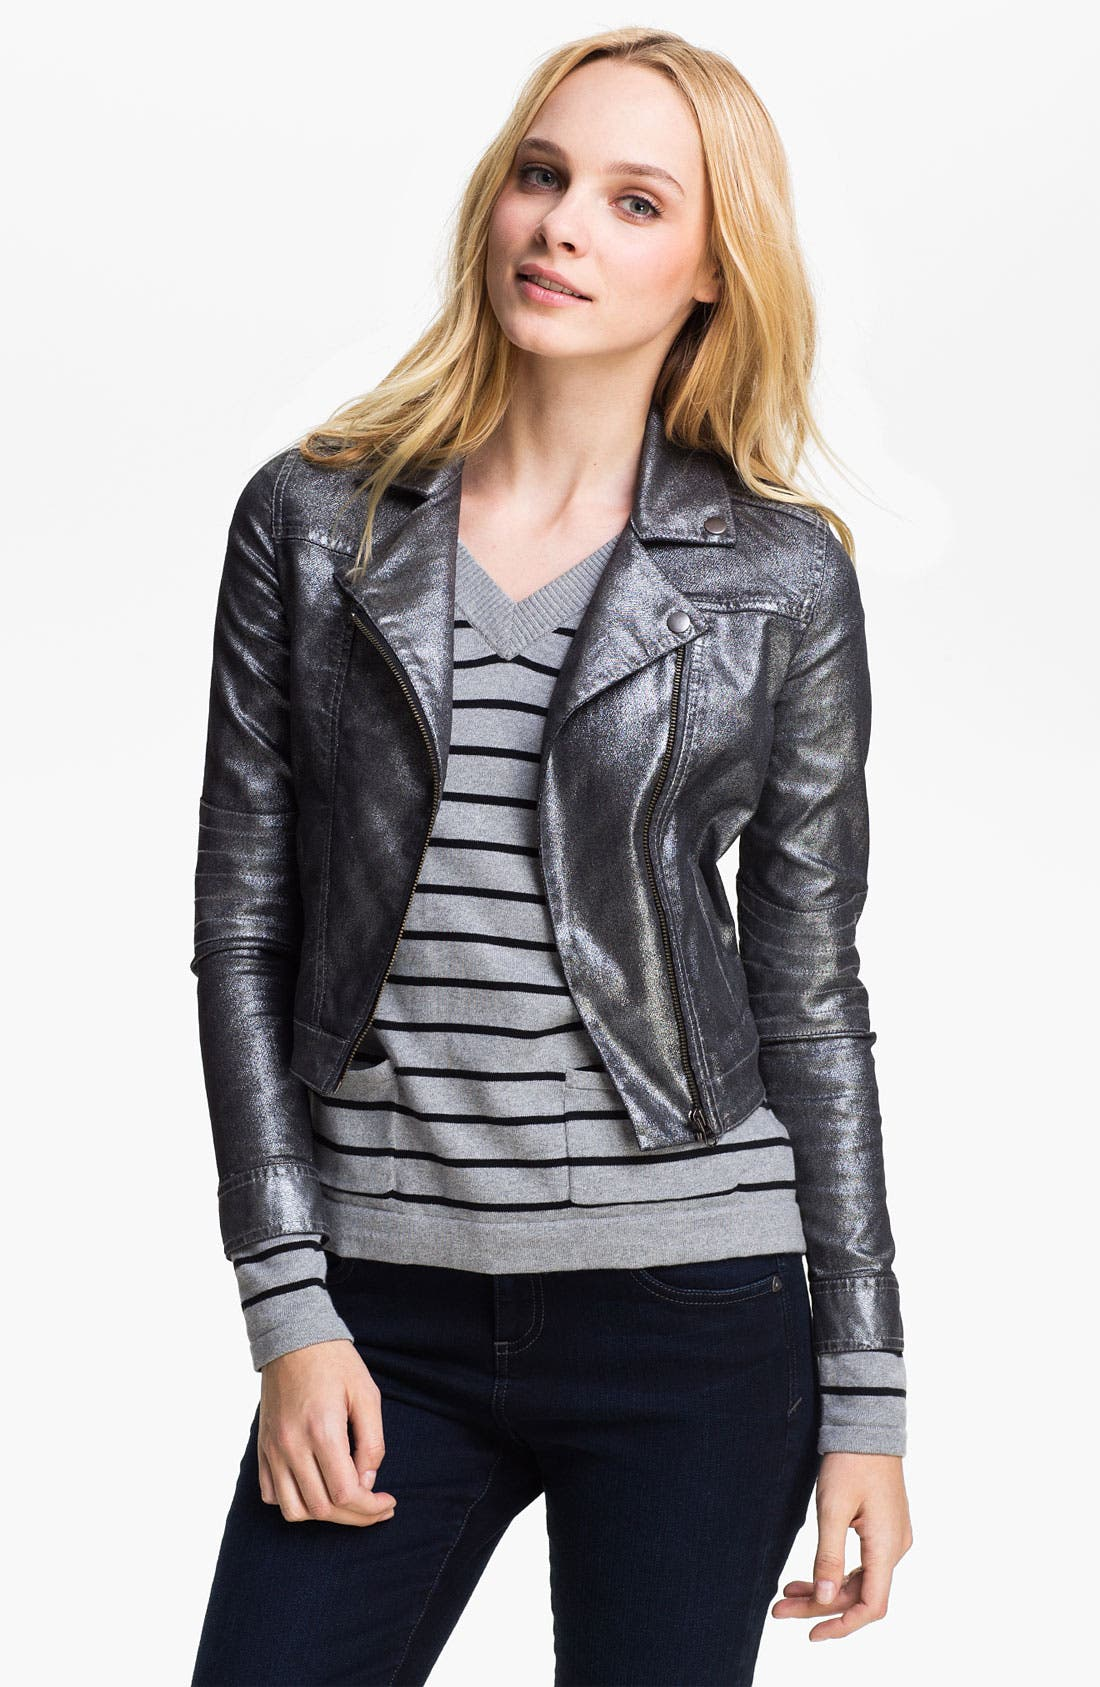 Main Image - Two by Vince Camuto Metallic Moto Jacket